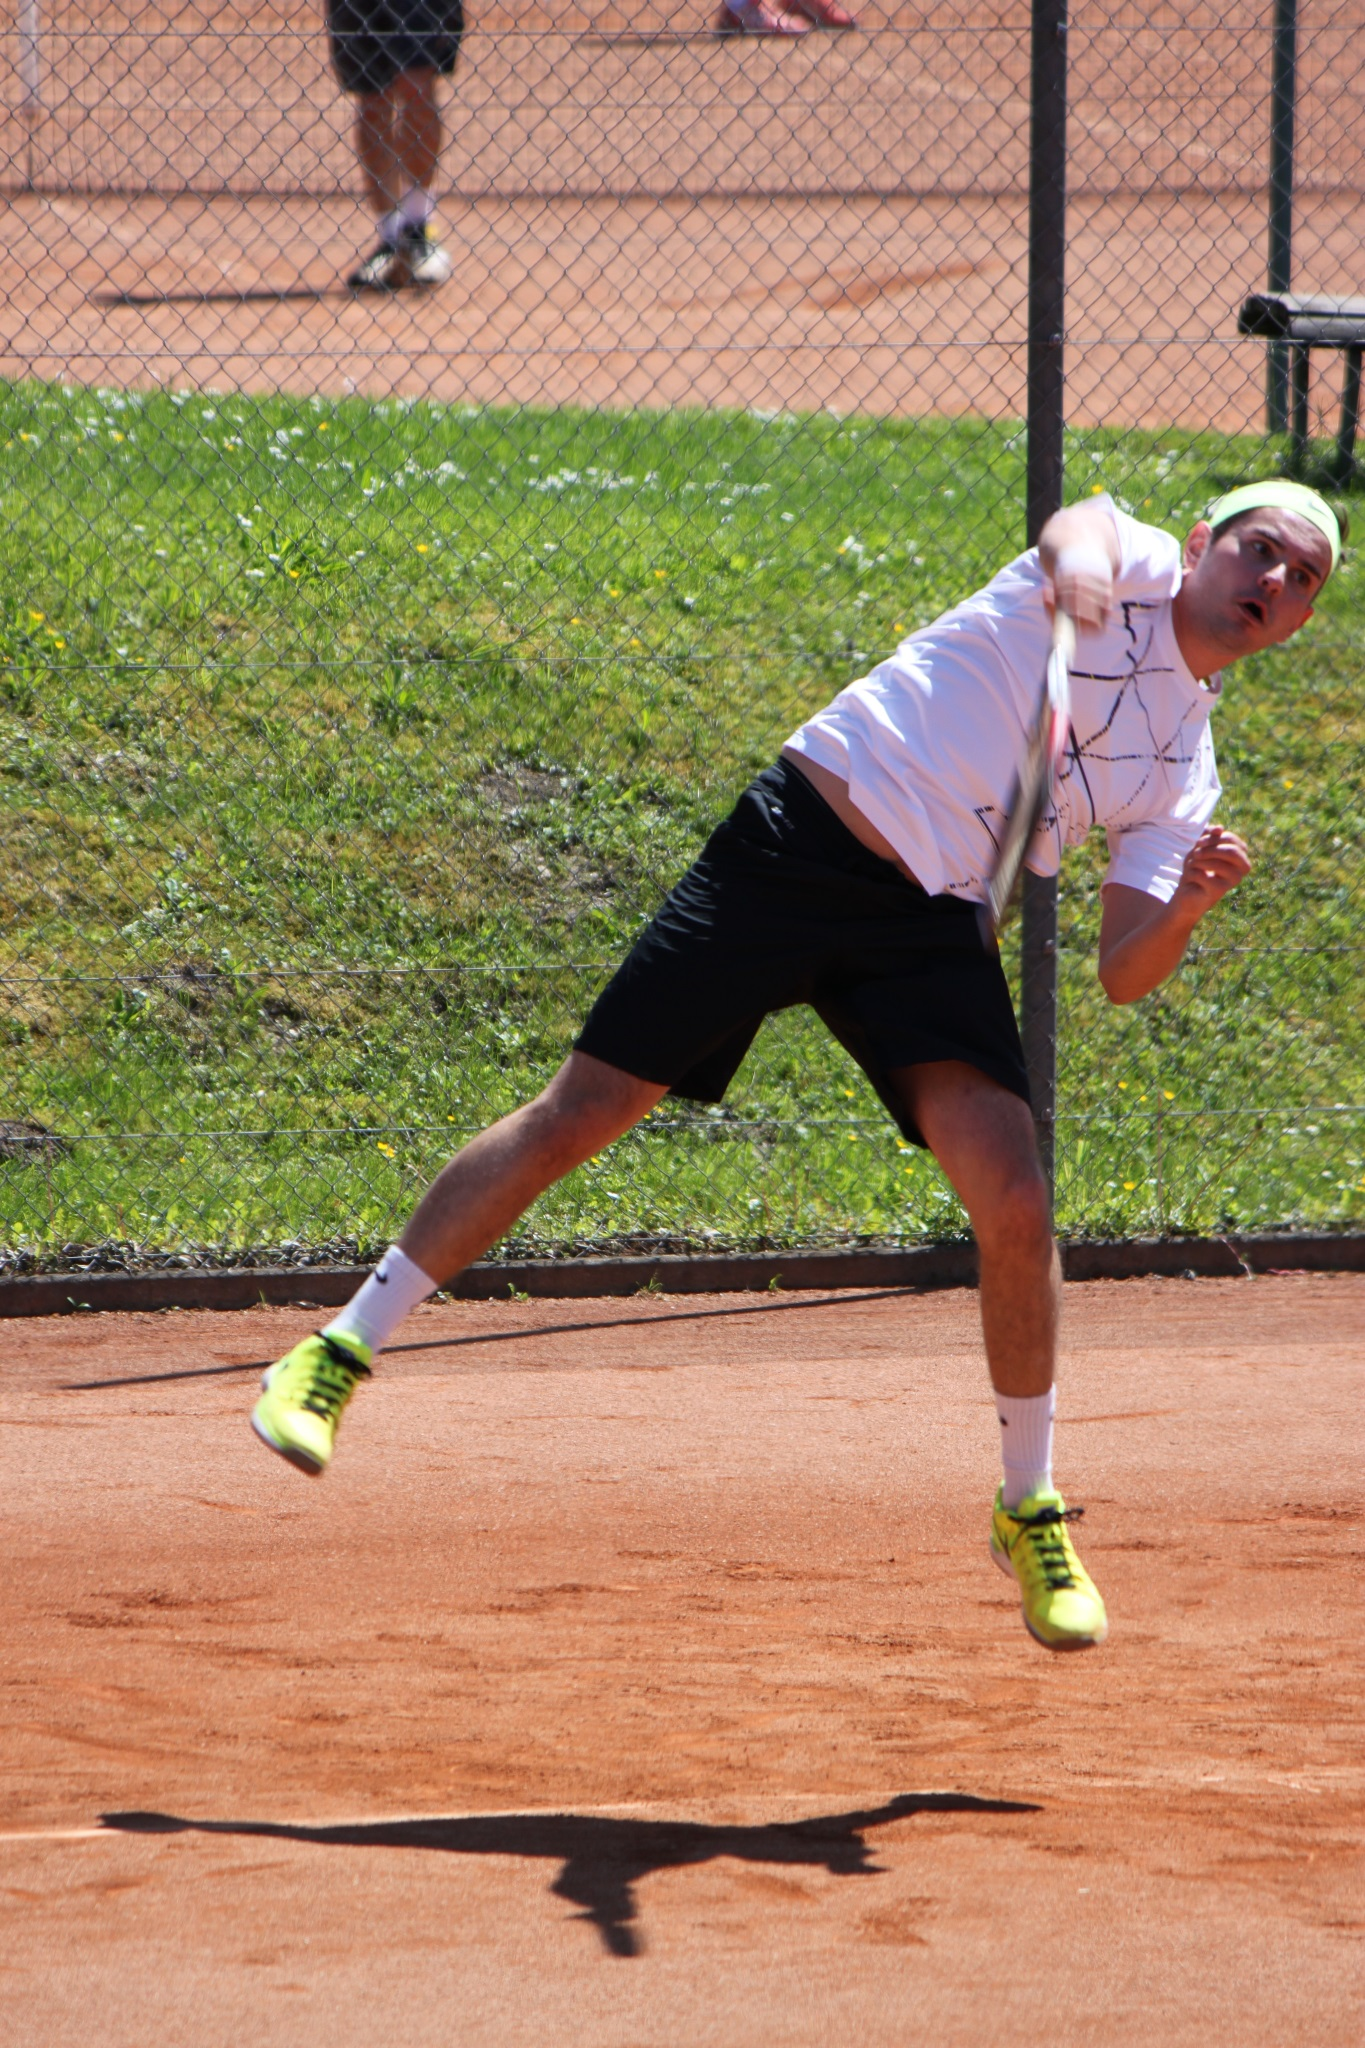 Oli in Action - by Orsi